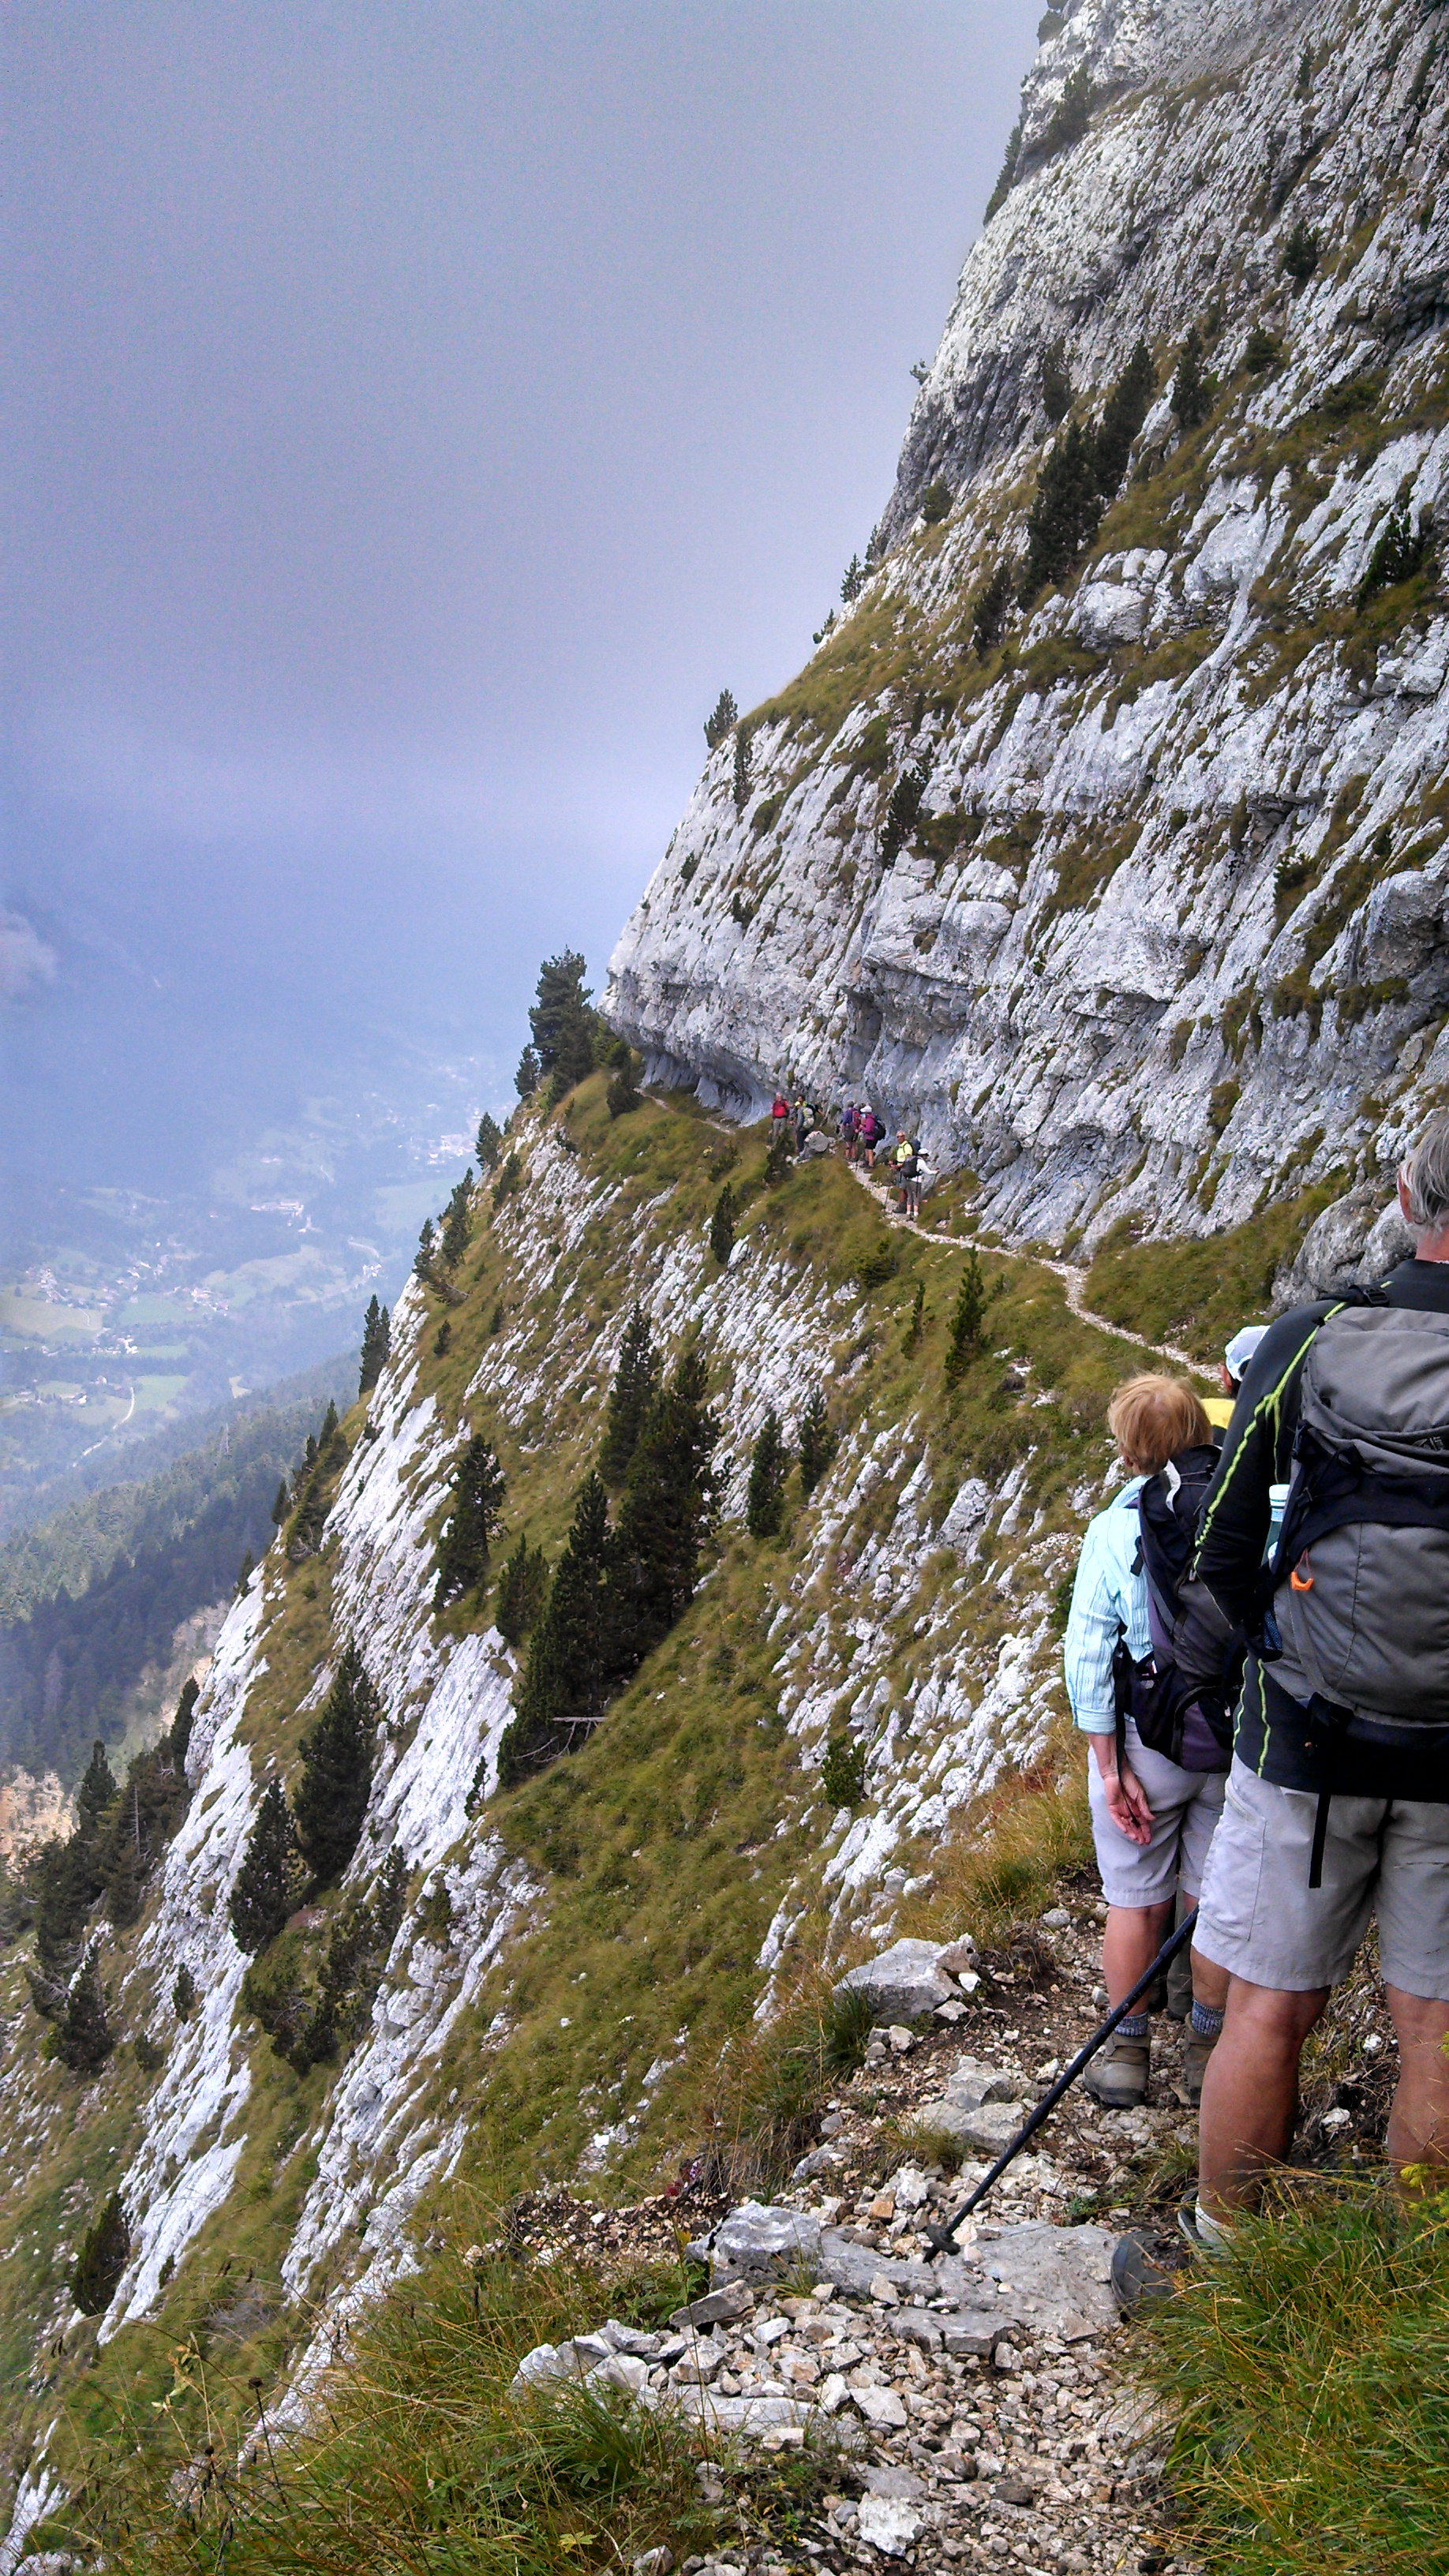 Hiking the Narrow trails (French alps near Grenoble)